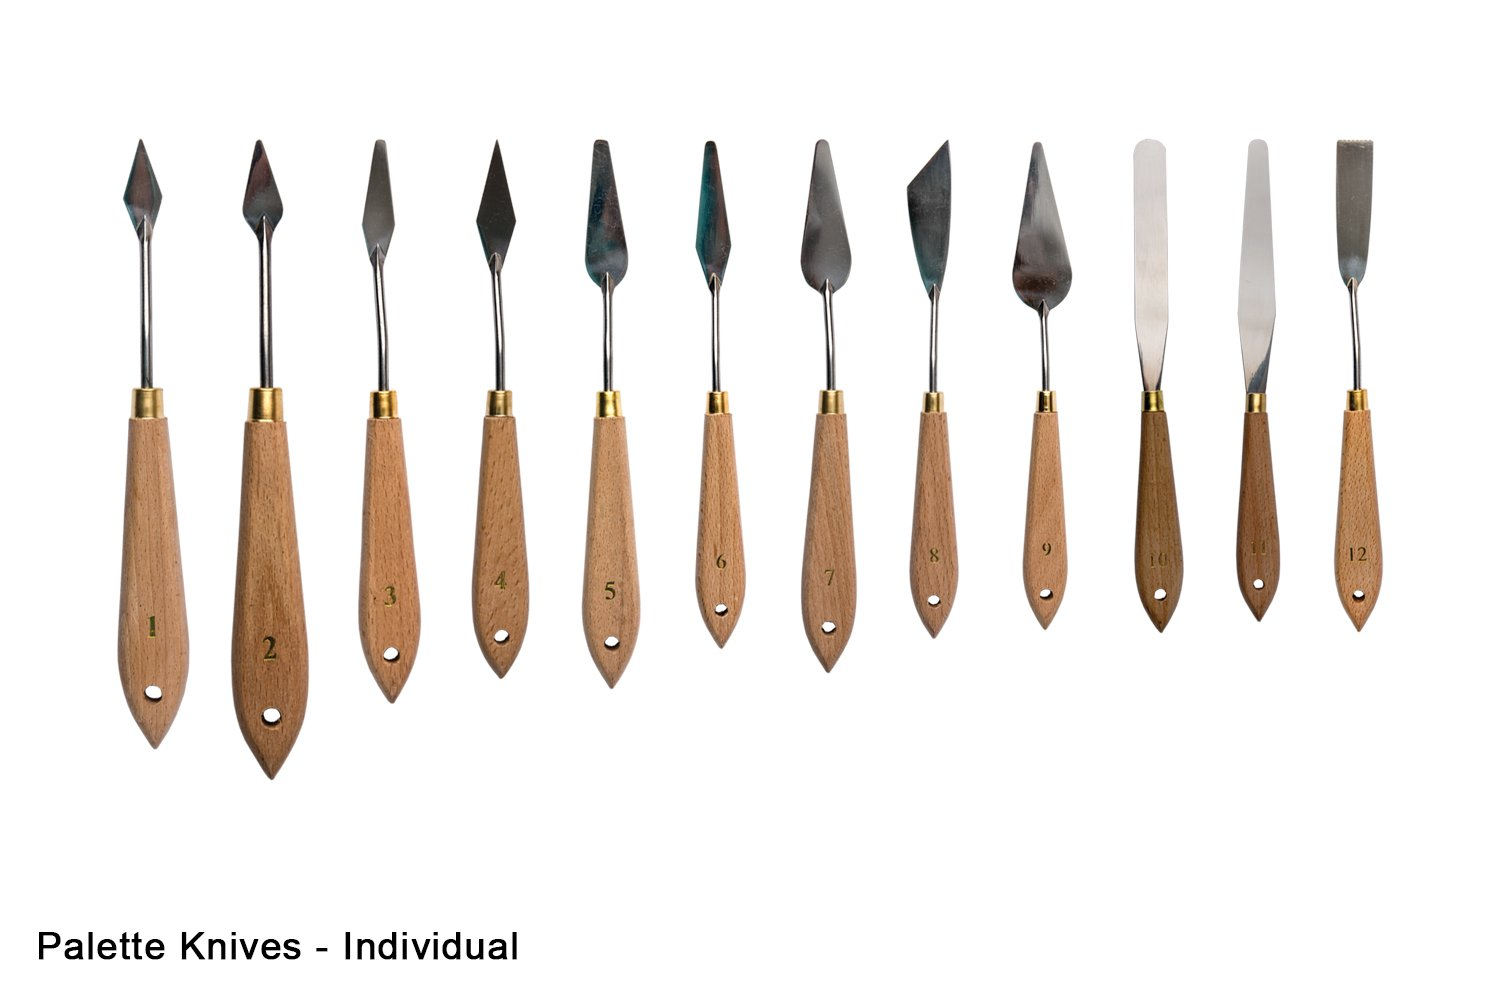 Palette Knives - Individual